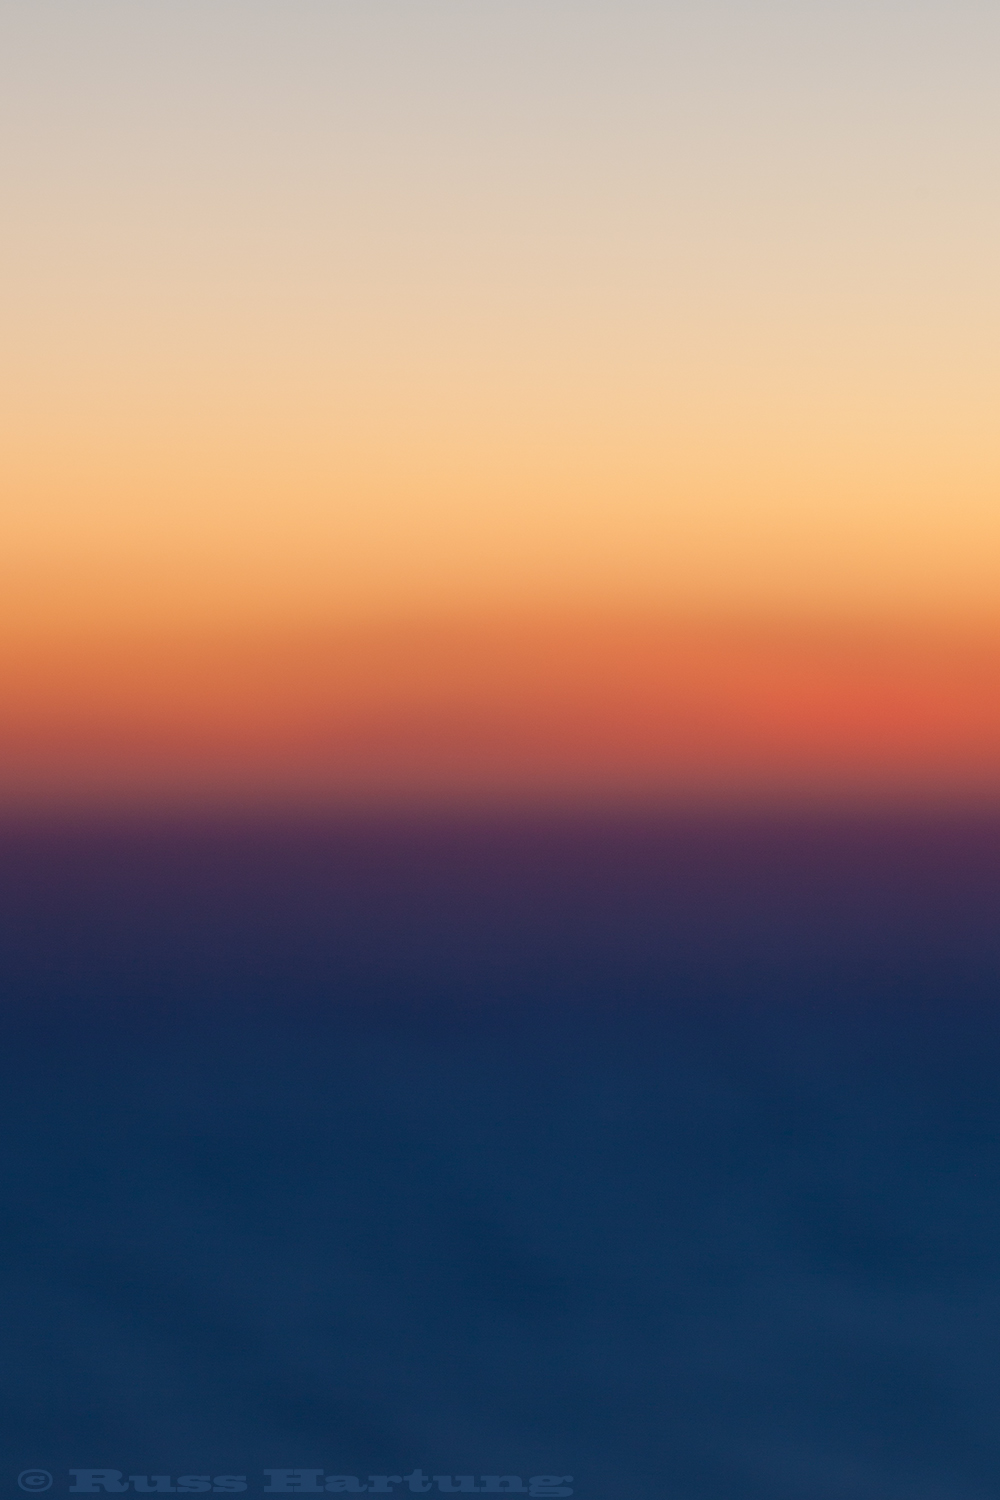 Unfocused sunset over the ocean.